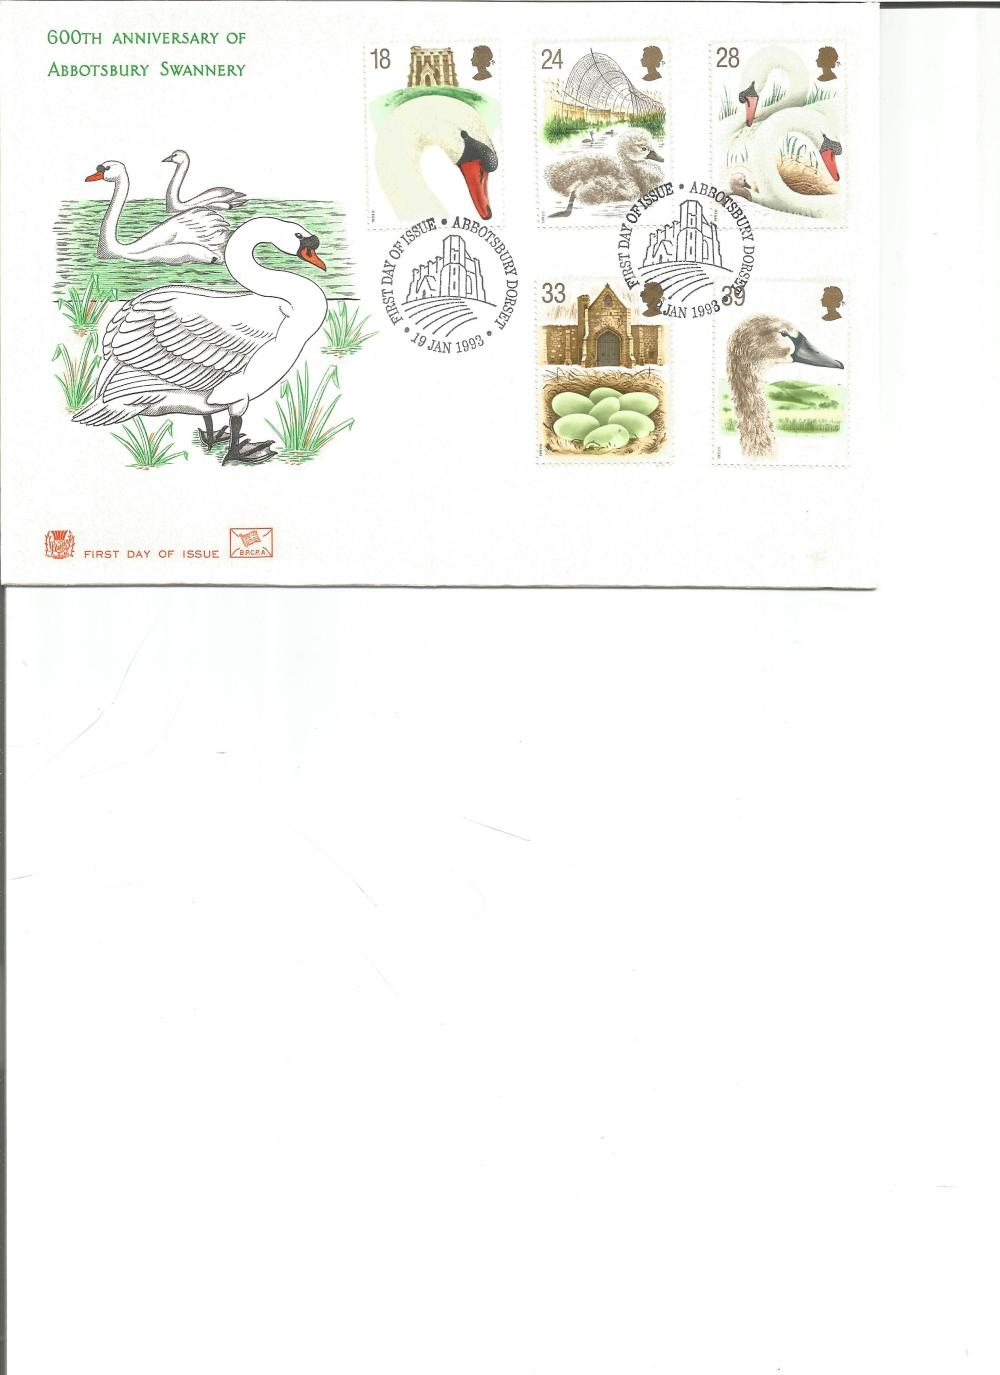 FDC 600TH Anniversary of the Abbotsbury Swannery c/w set of five commemorative stamps PM First Day